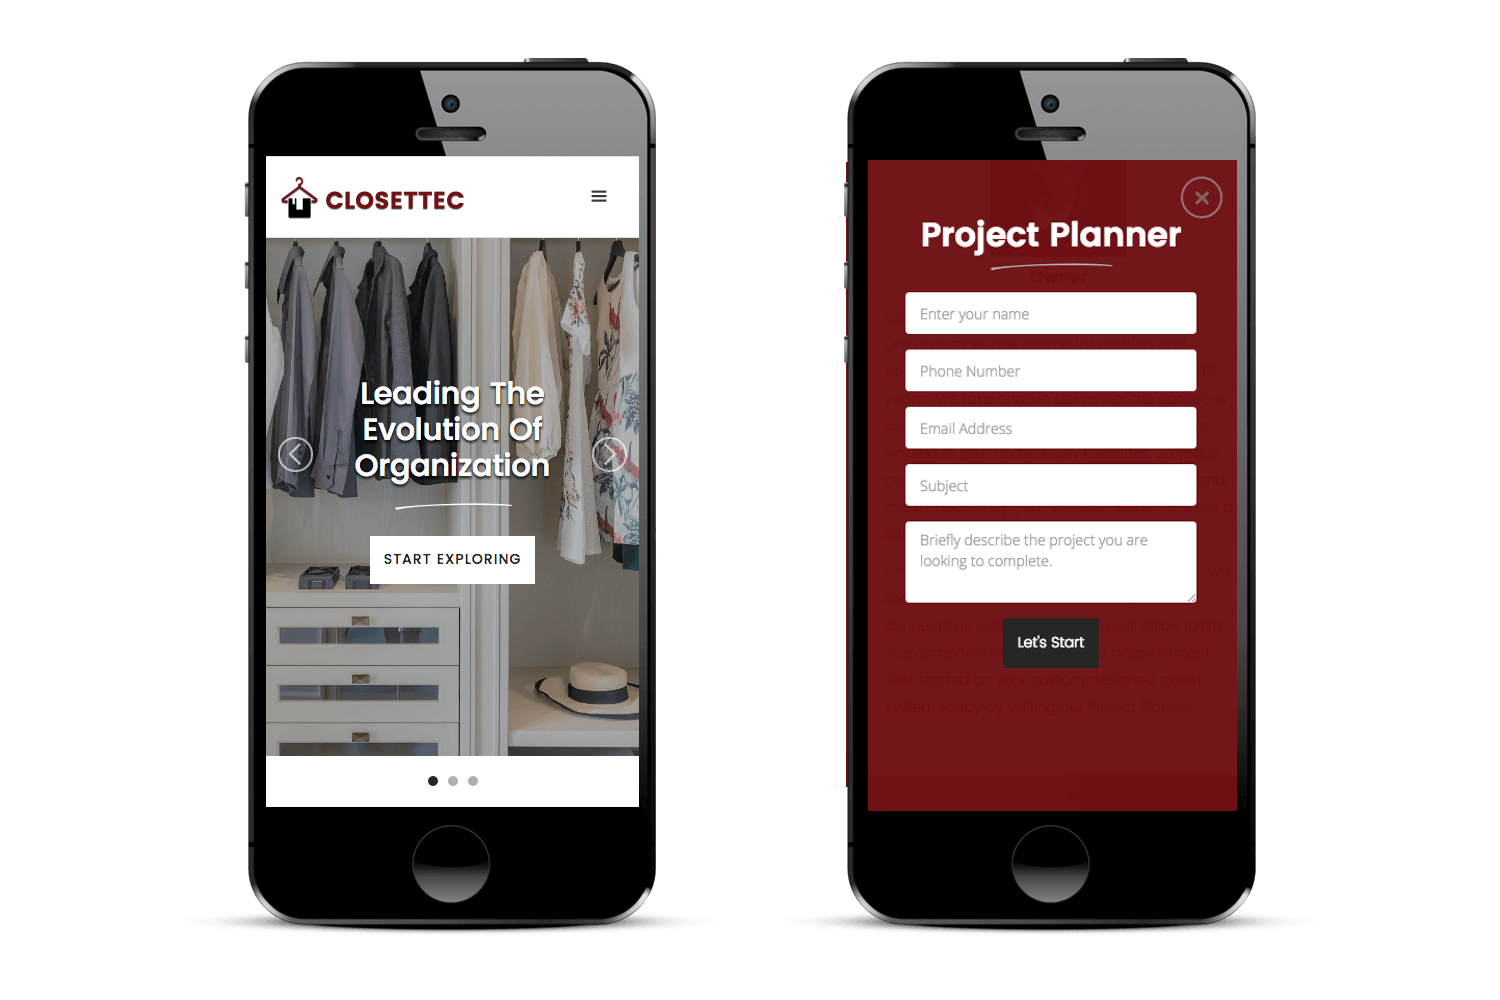 Image of responsive web design case study by Quetra Creative for Closettec mobile device